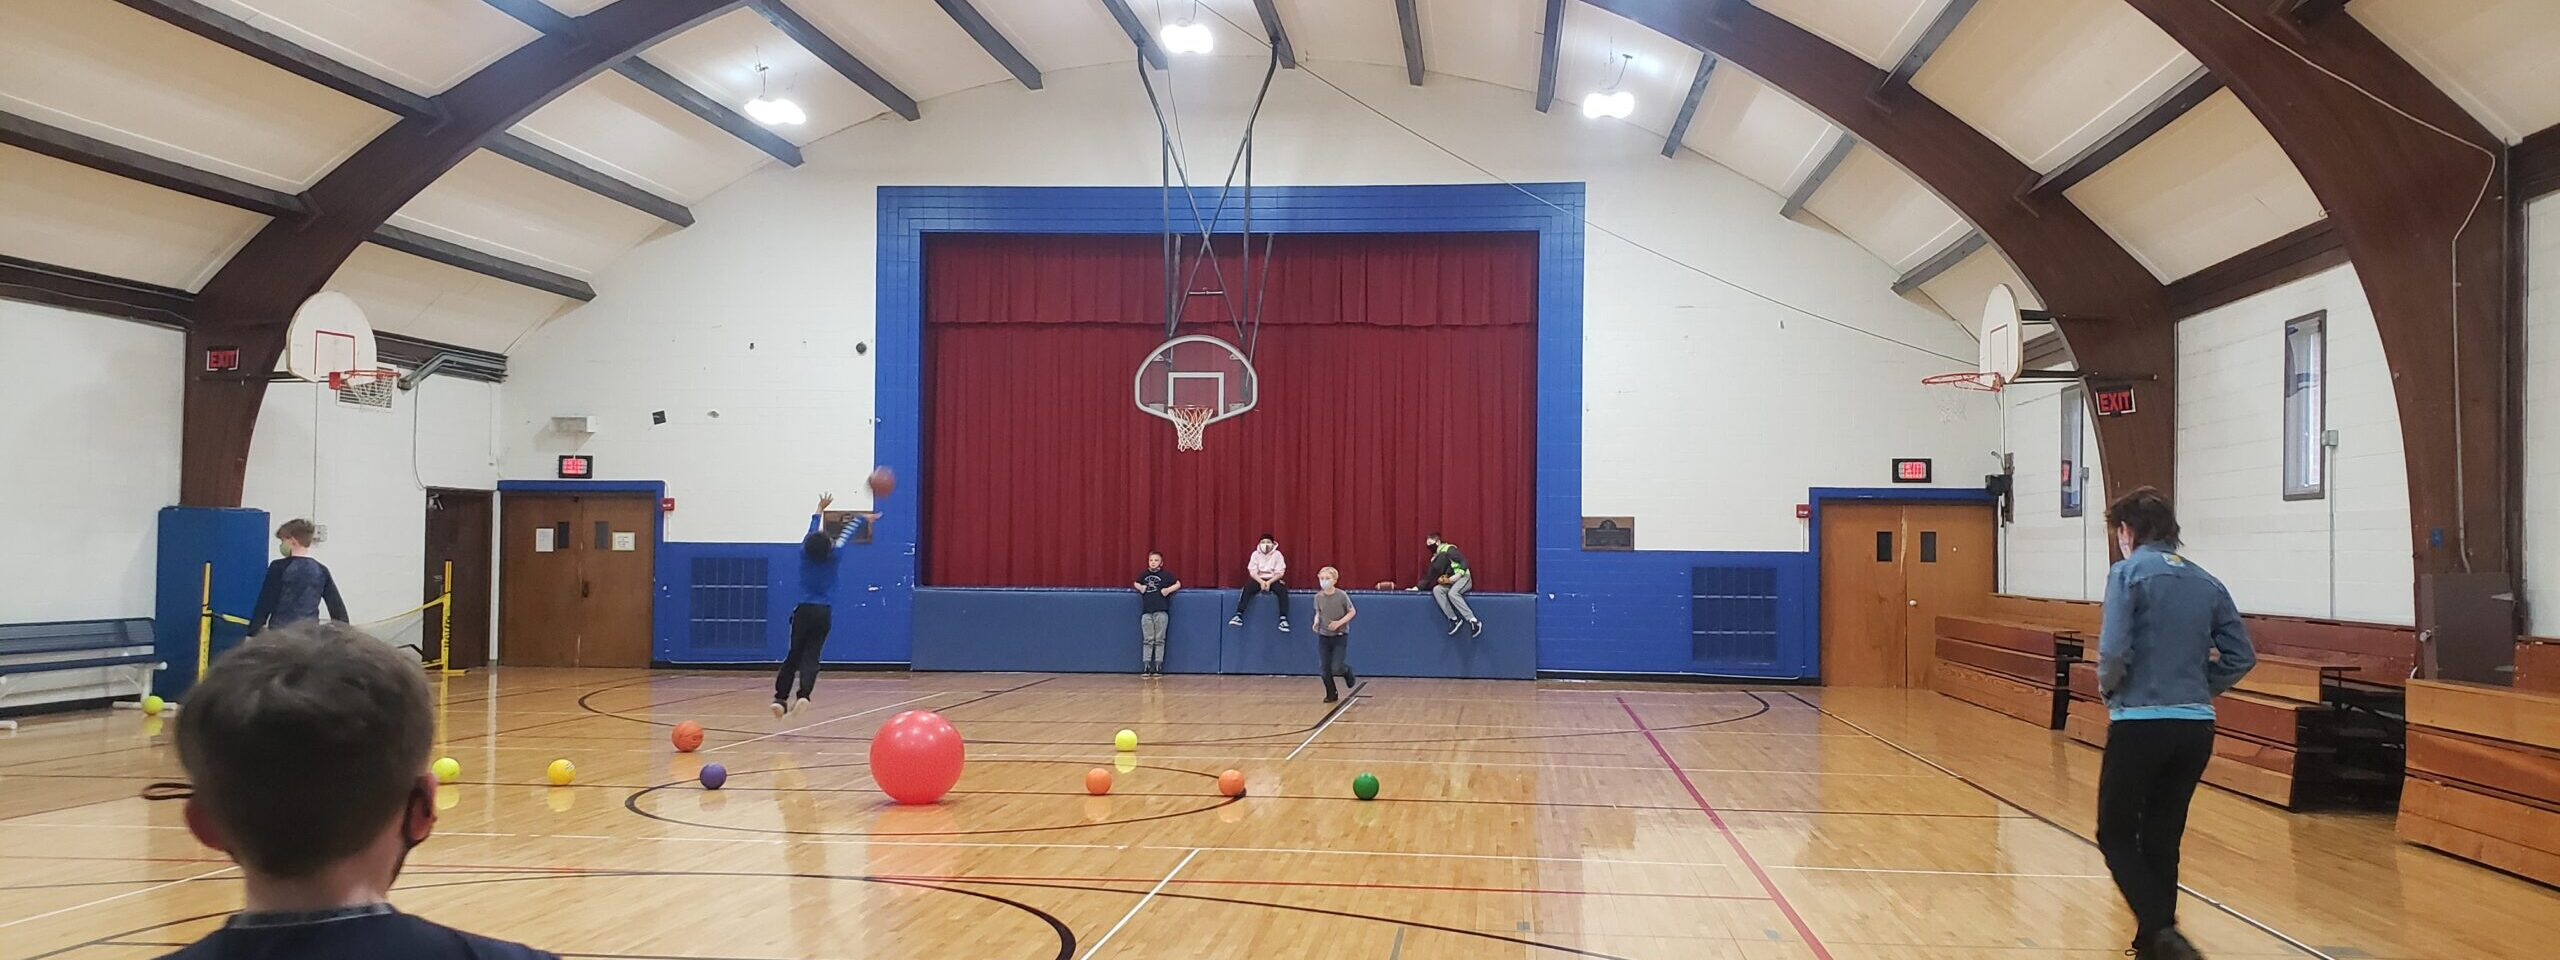 kids playing in the school gym